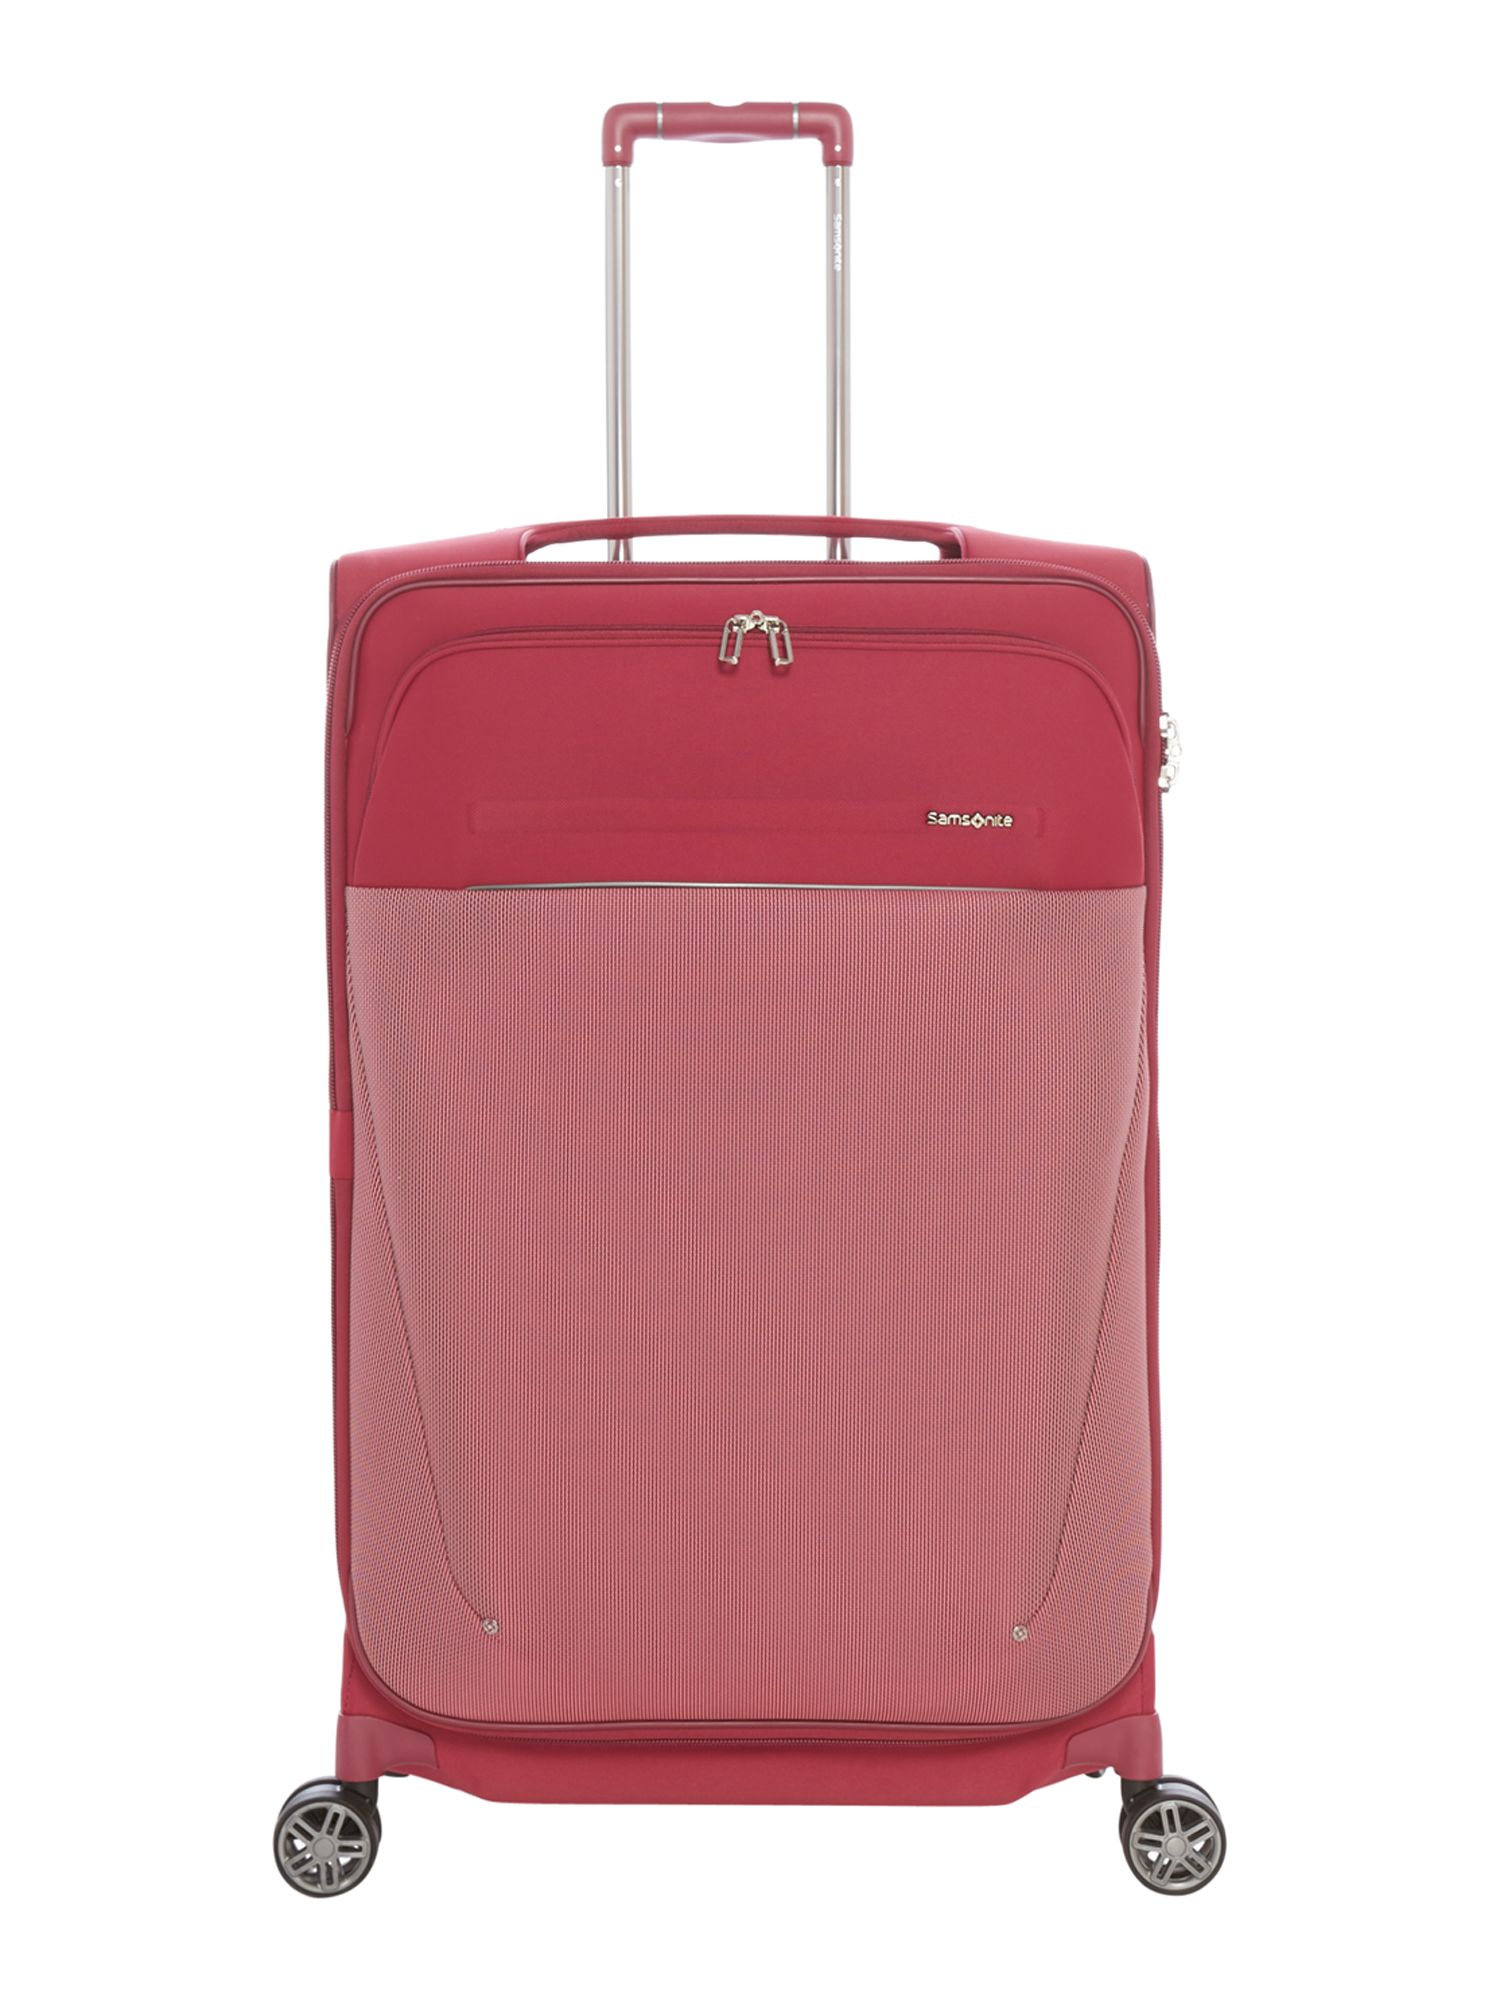 Samsonite B-Lite Icon Granita Red 71cm Medium Spinner Case, Red